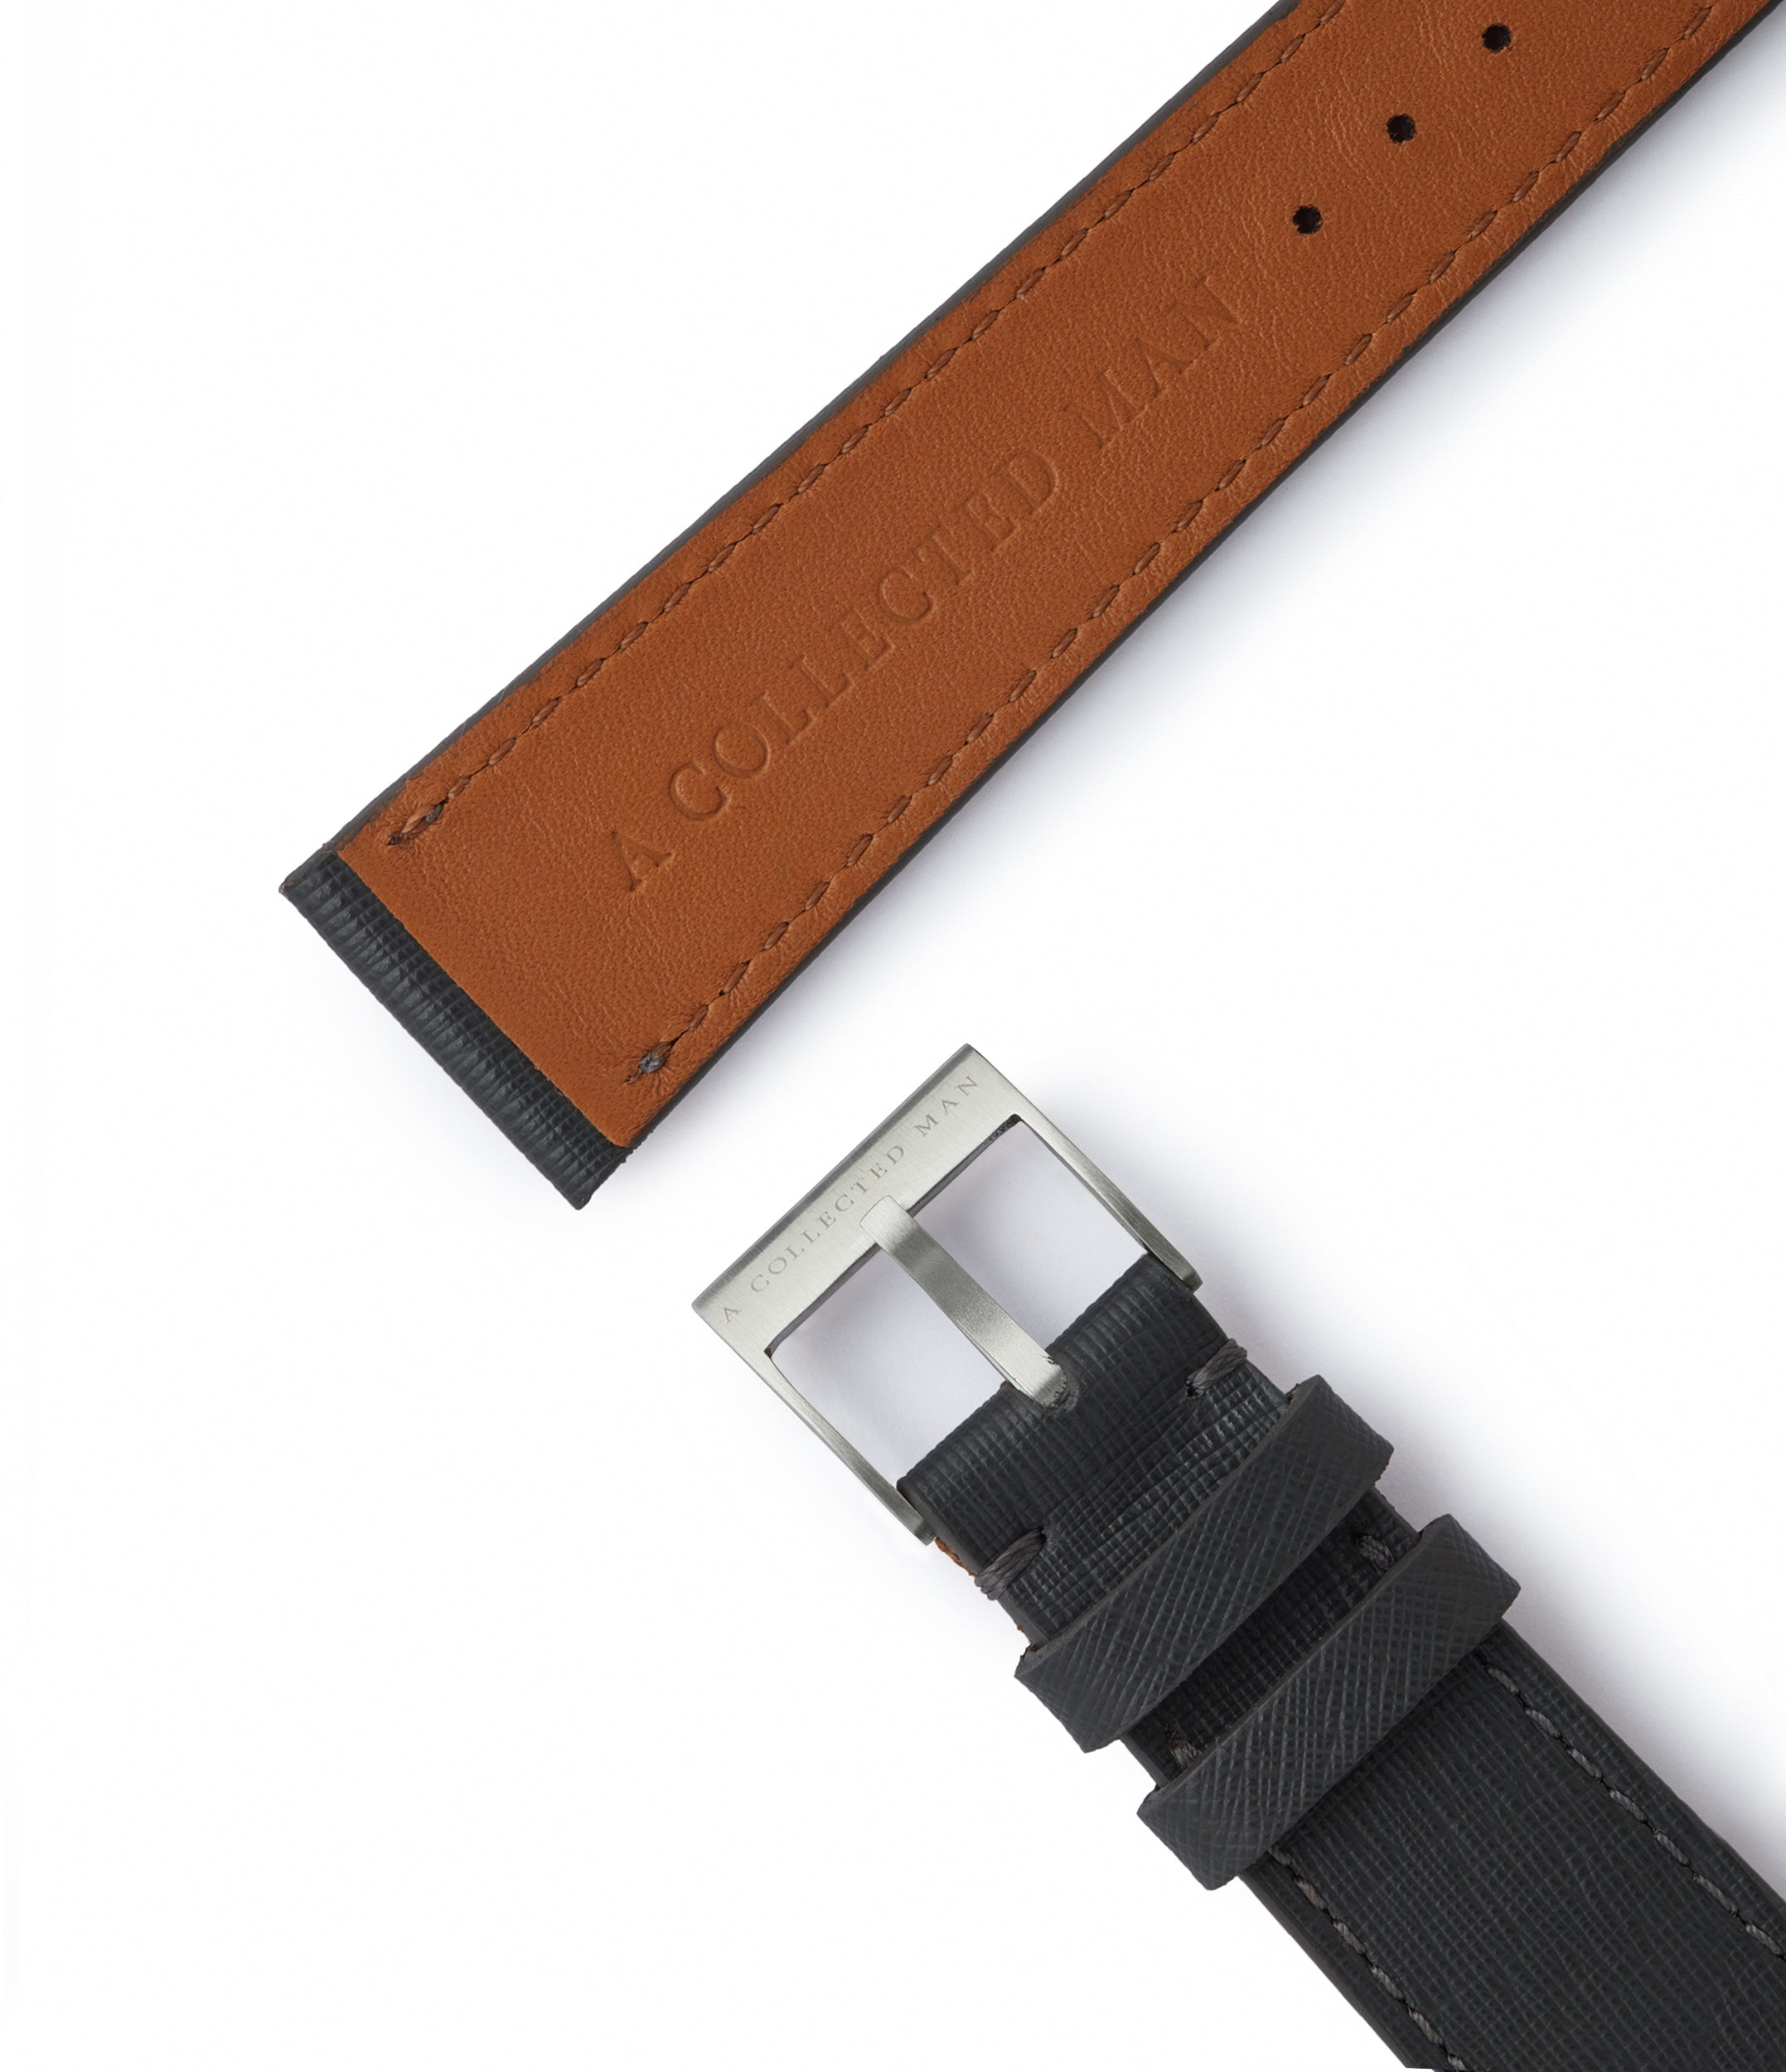 grey saffiano leather watch strap 18mm to 14mm Venice JPM for sale order online at A Collected Man London